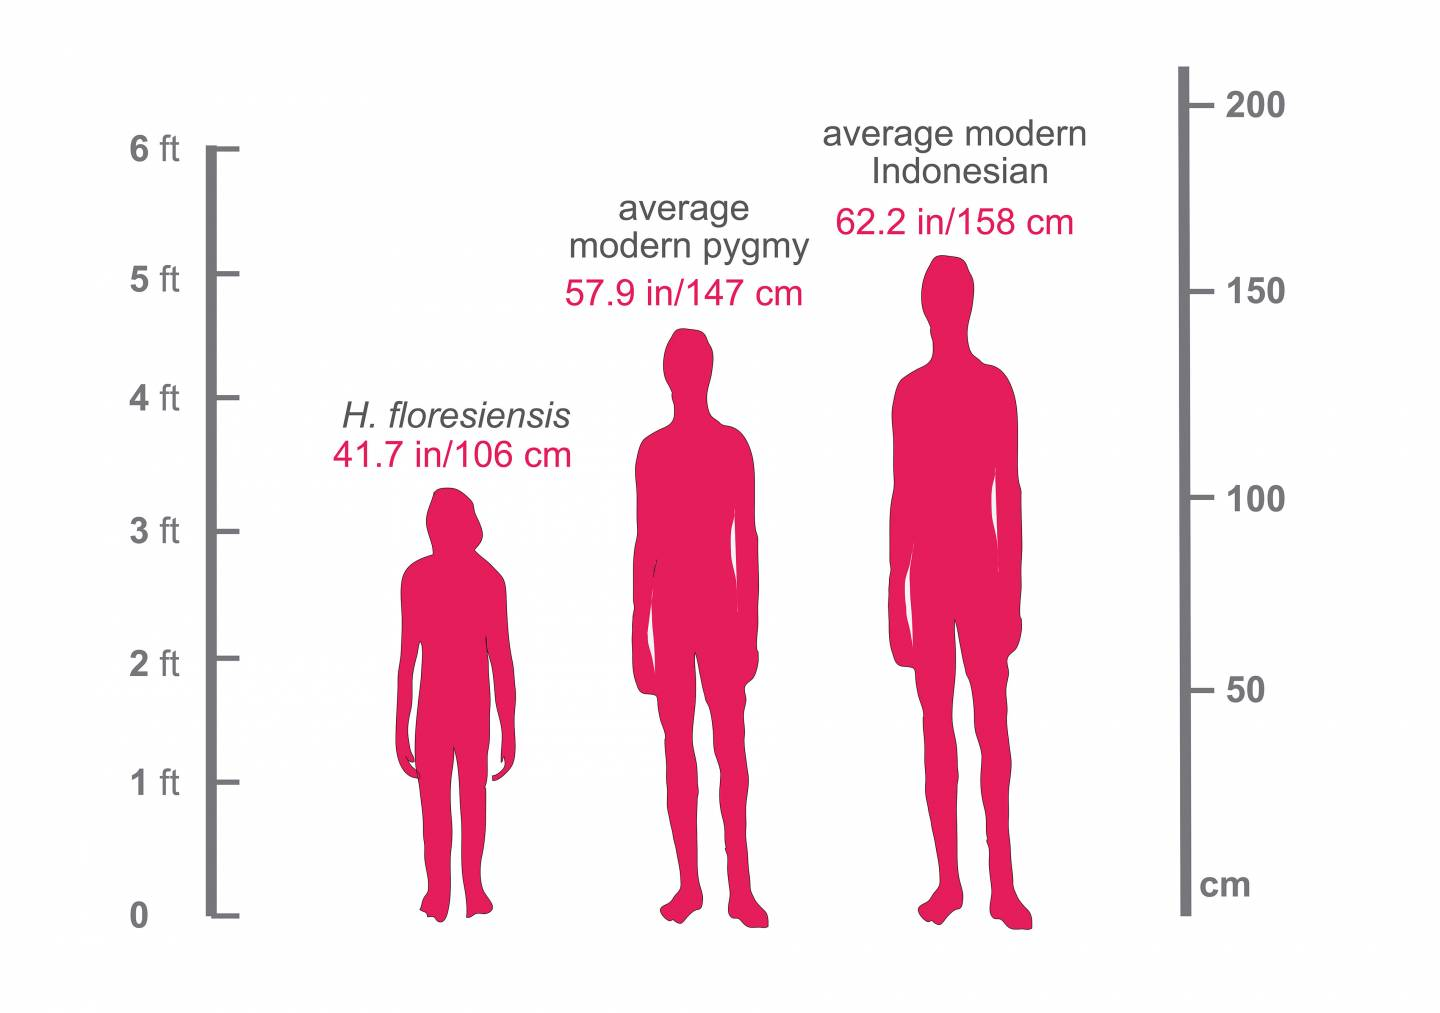 Height comparison between Homo florensiensis, modern pygmy, and average Indonesian